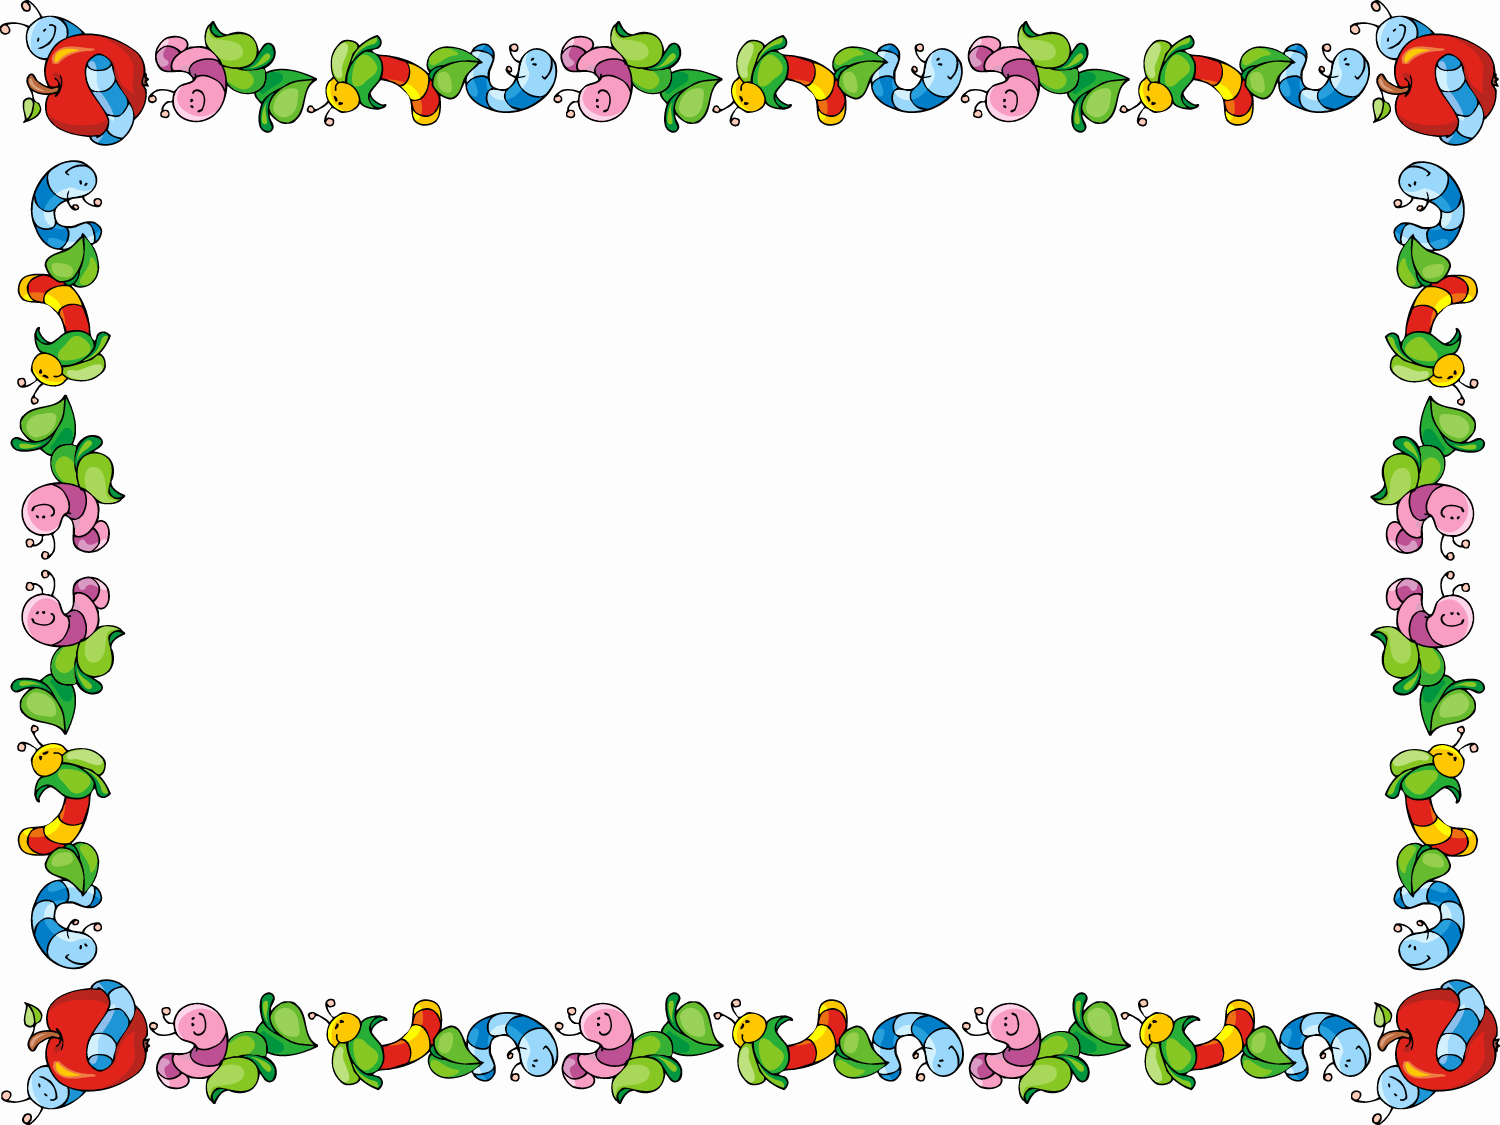 Certificate Border Design Free Download Best Of Free Certificate Borders for Word Clipart Best